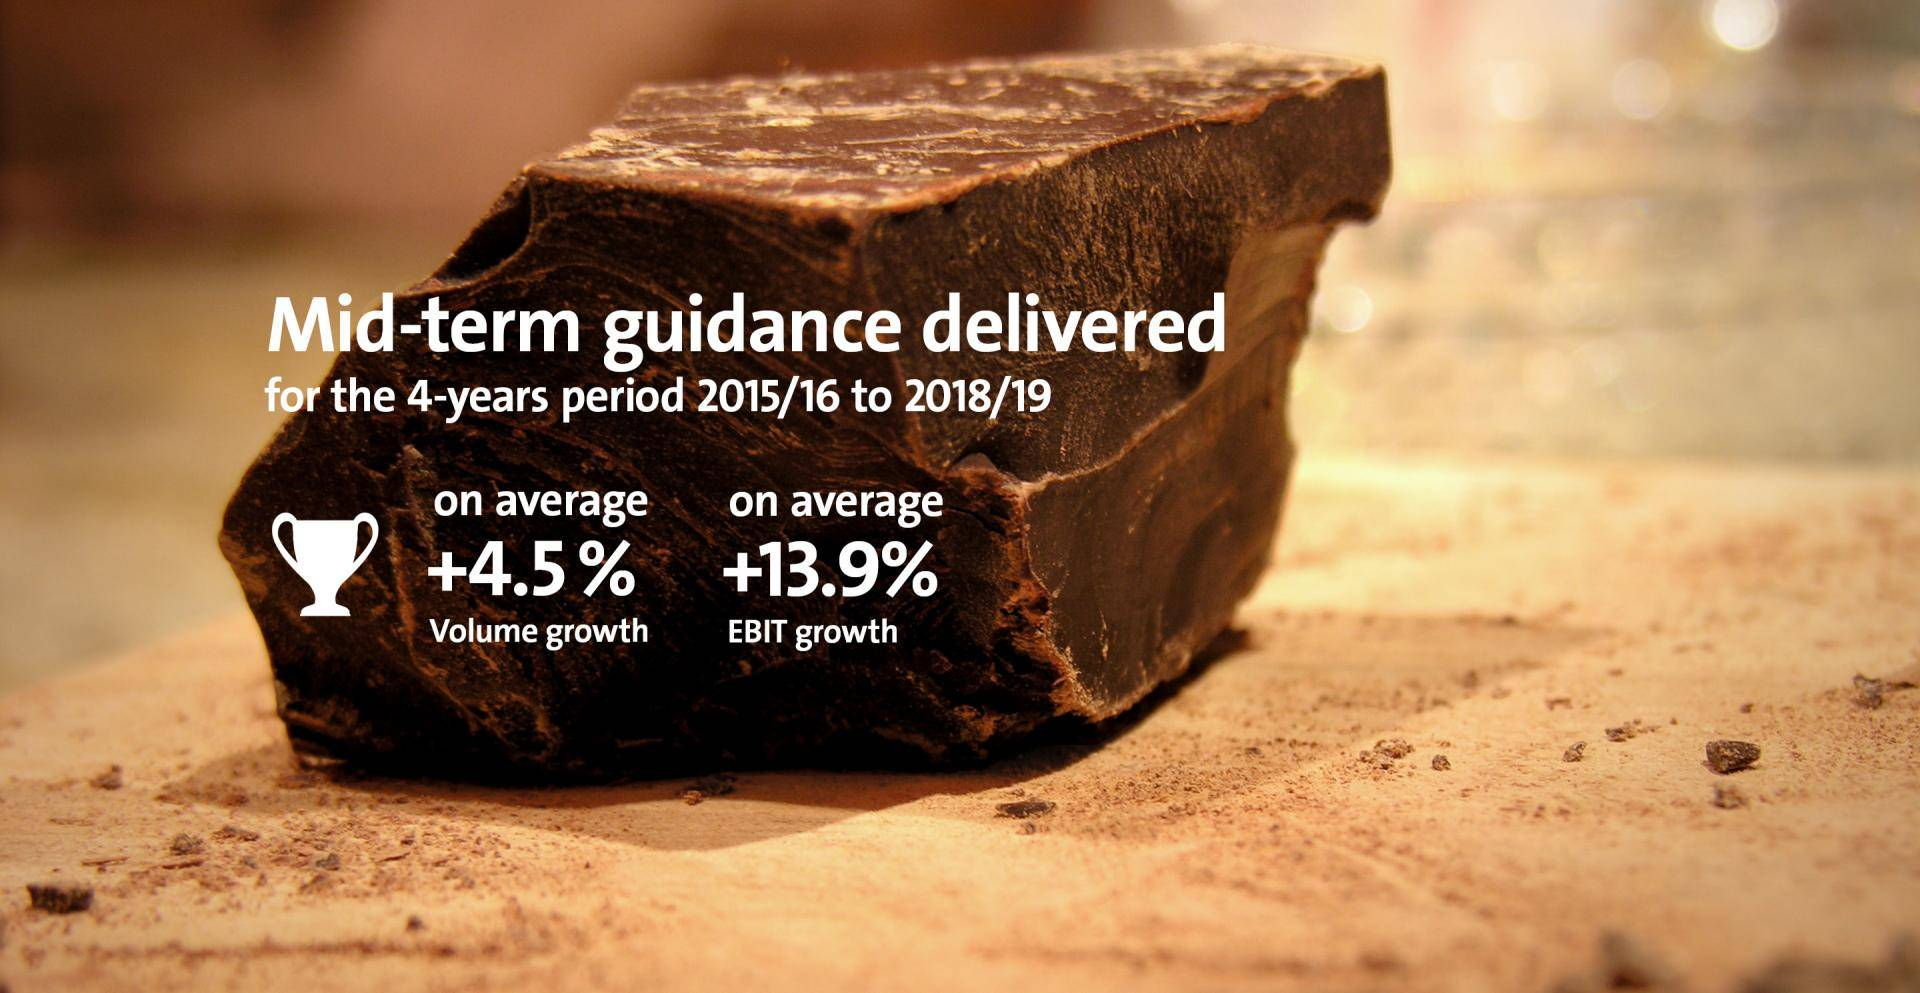 Image Slider Mid-term guidance Fiscal Year 2018/19 Barry Callebaut